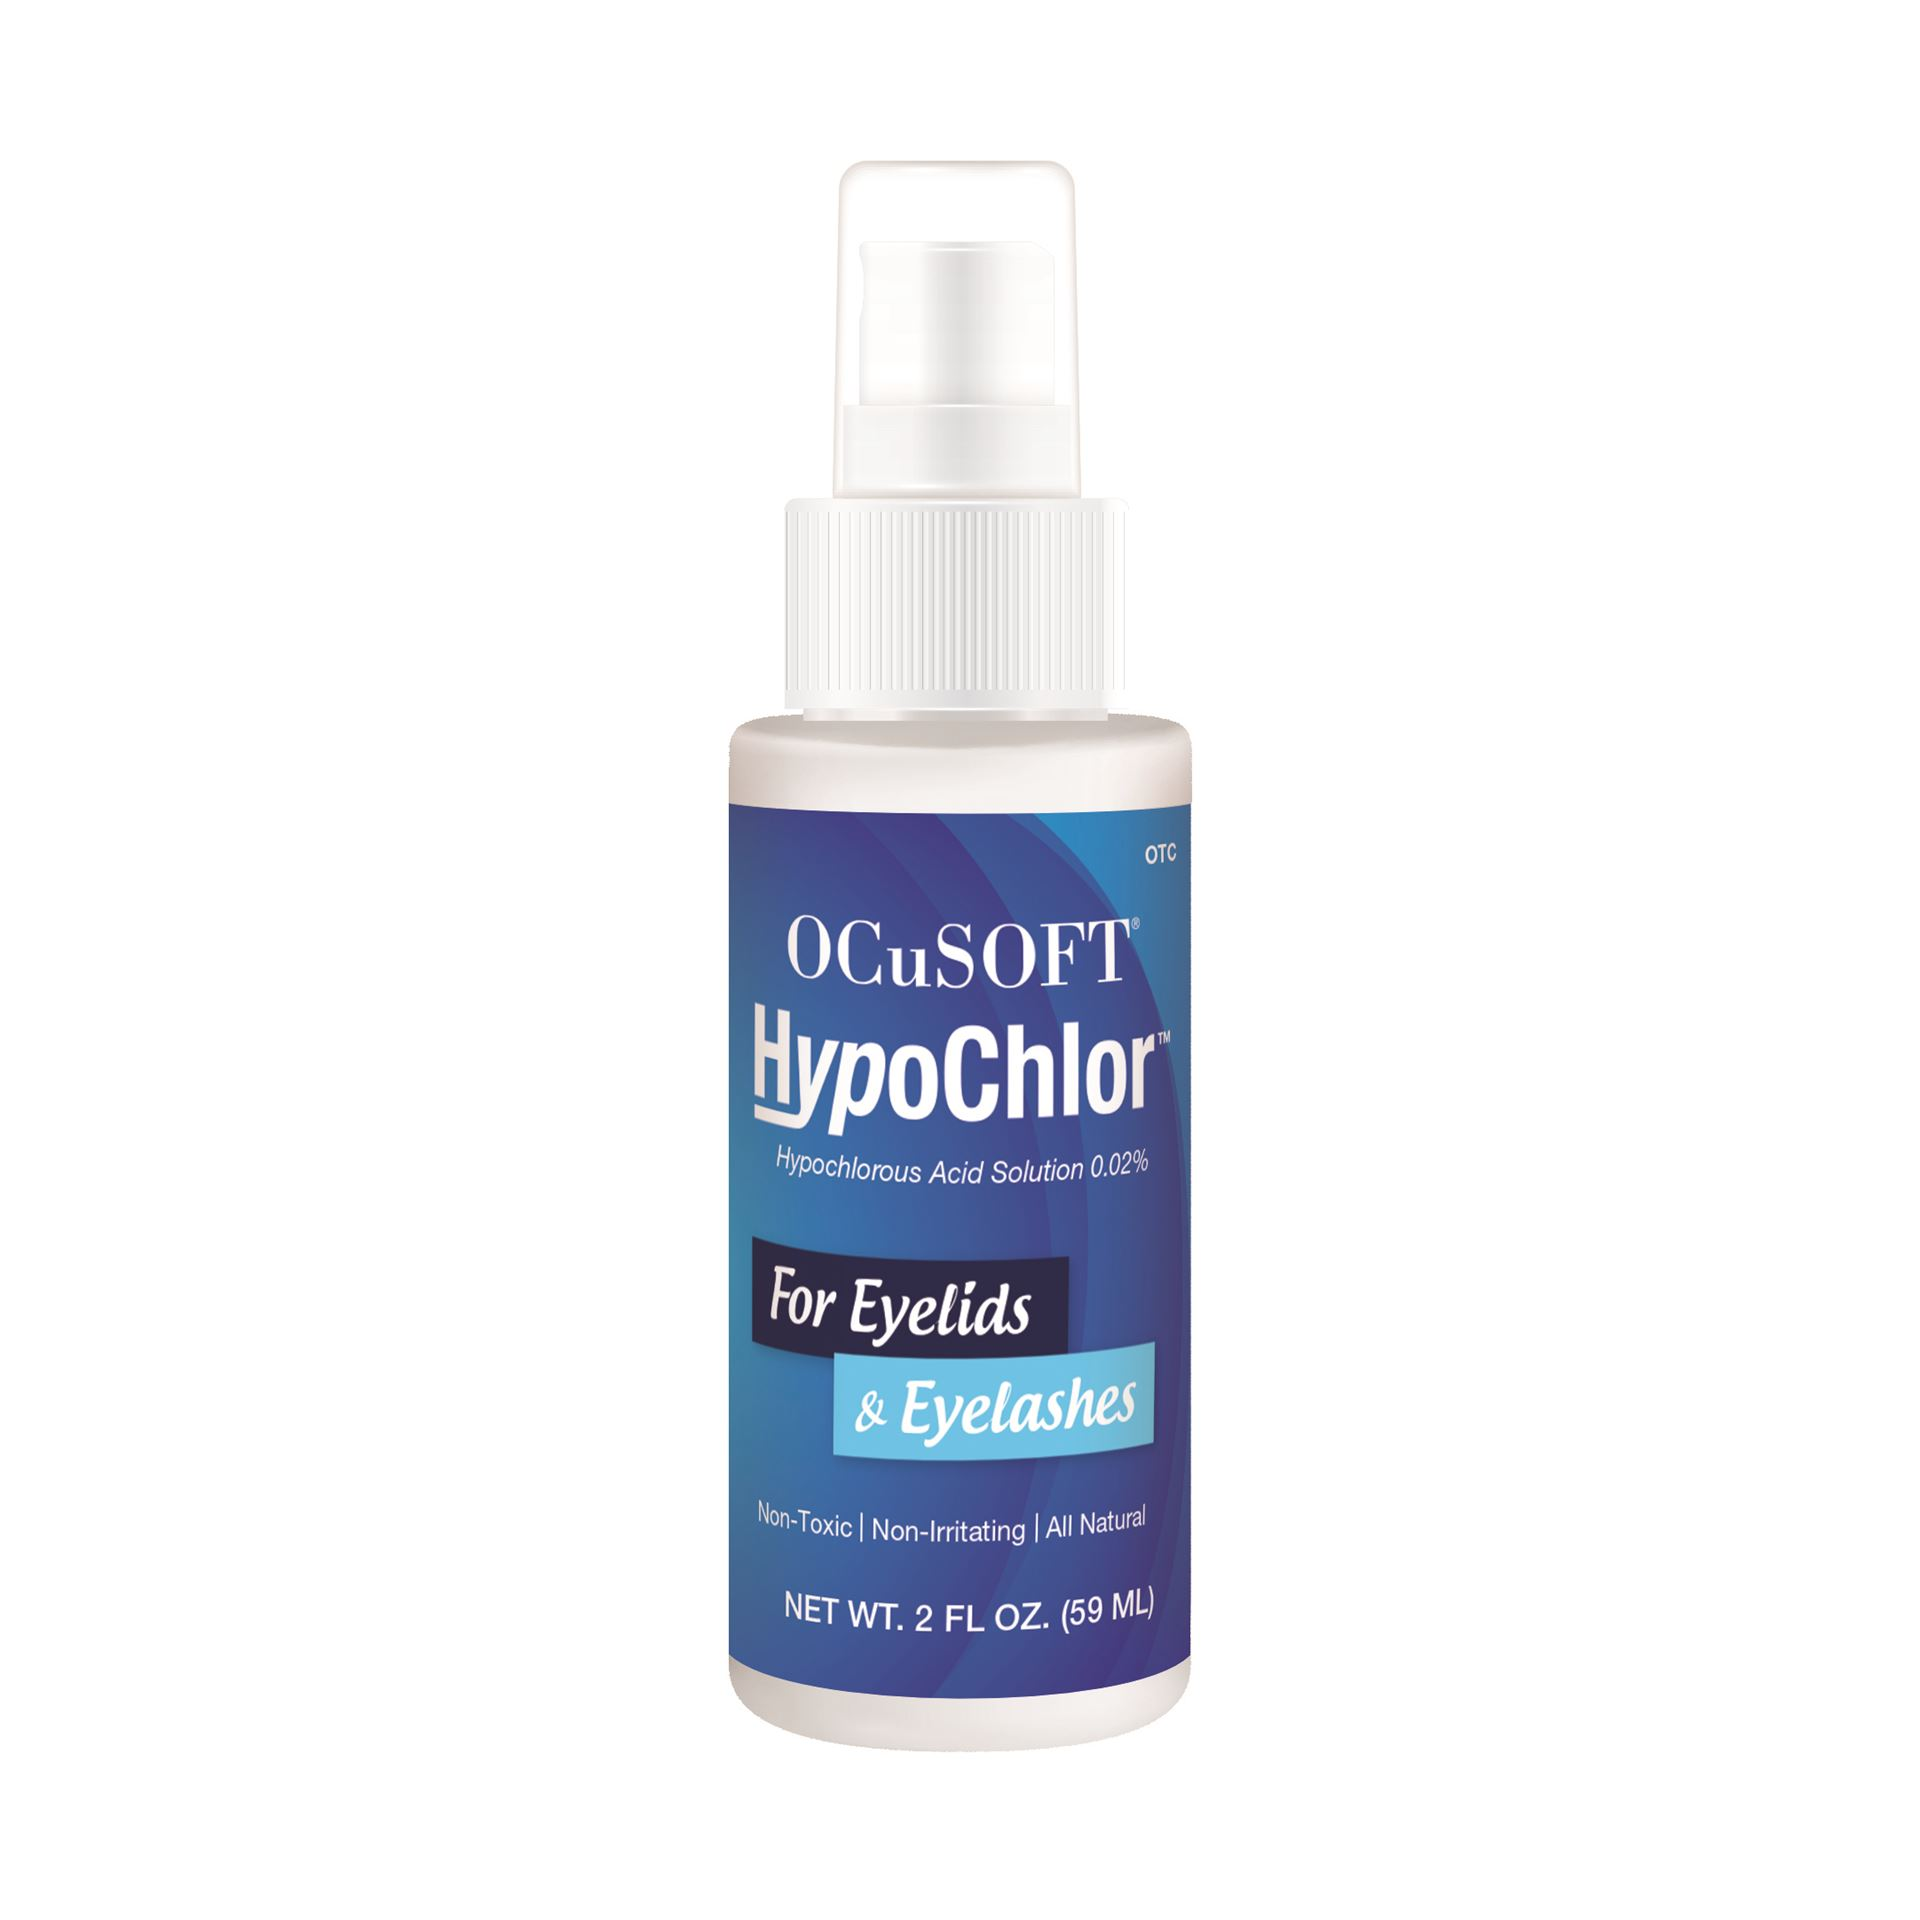 0004864_ocusoft hypochlor spray 02 2oz.jpeg